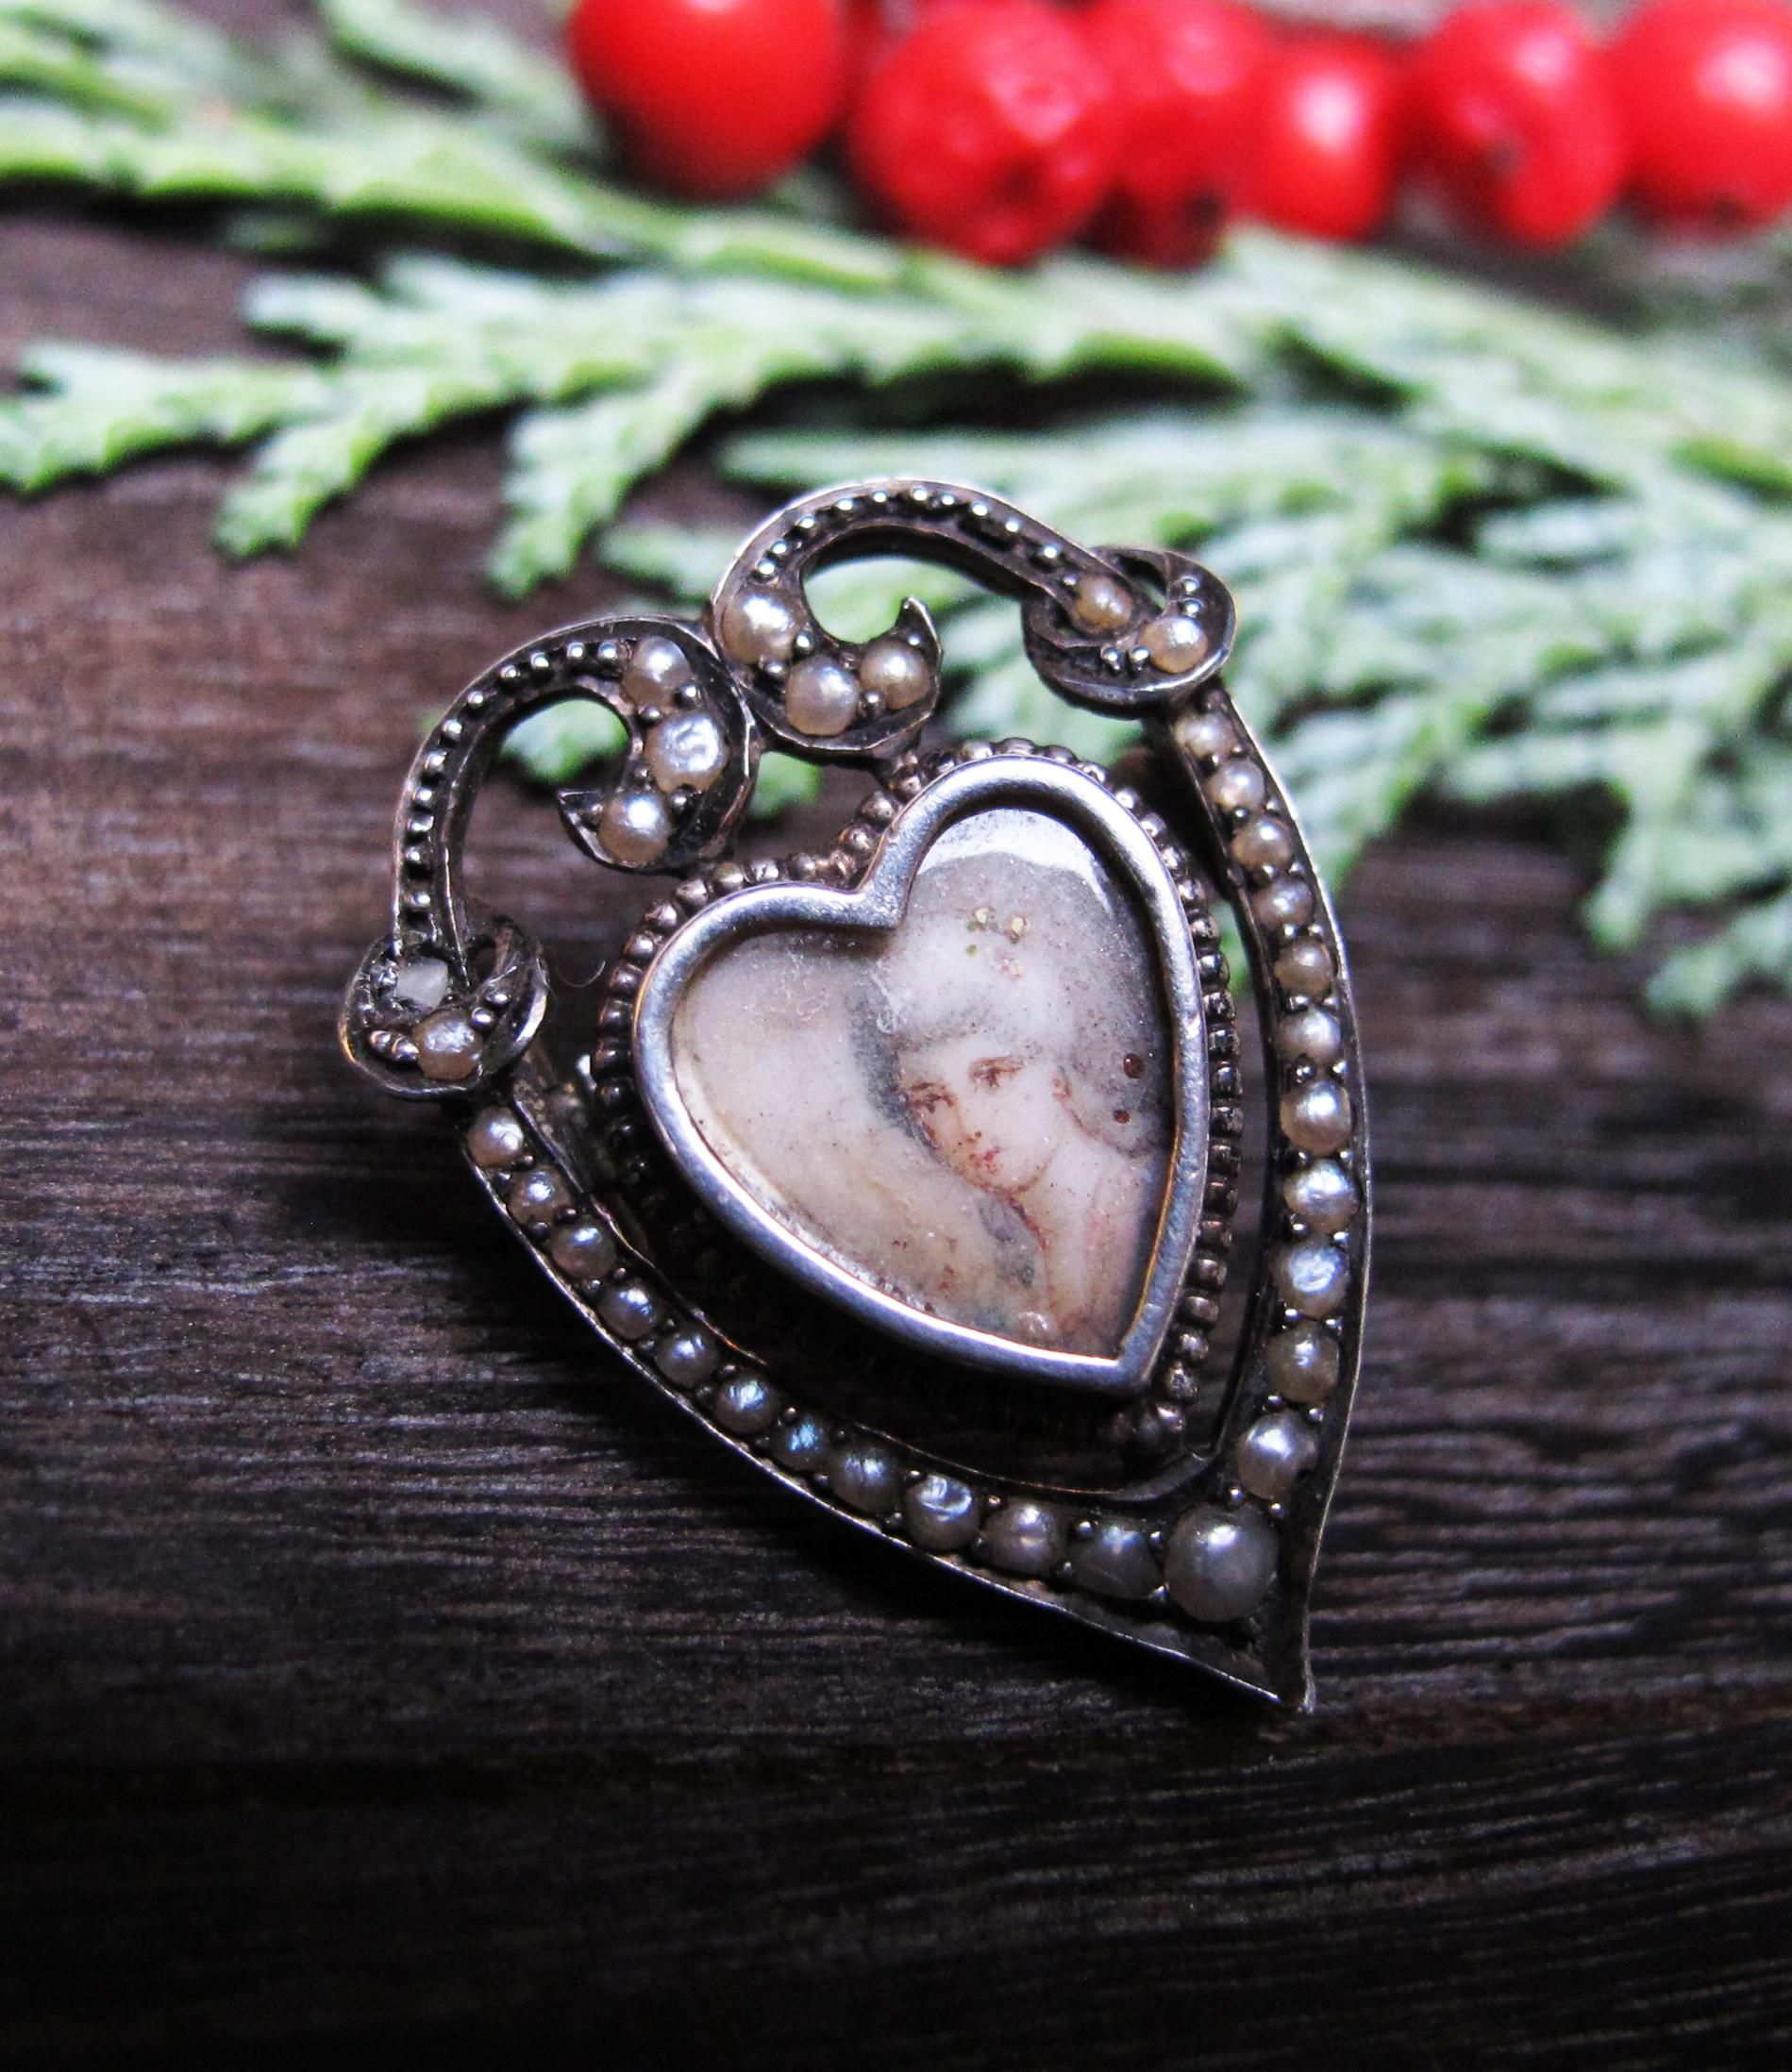 *Portrait of a Lady* Antique Georgian Portrait Miniature Brooch in Silver with Pearls